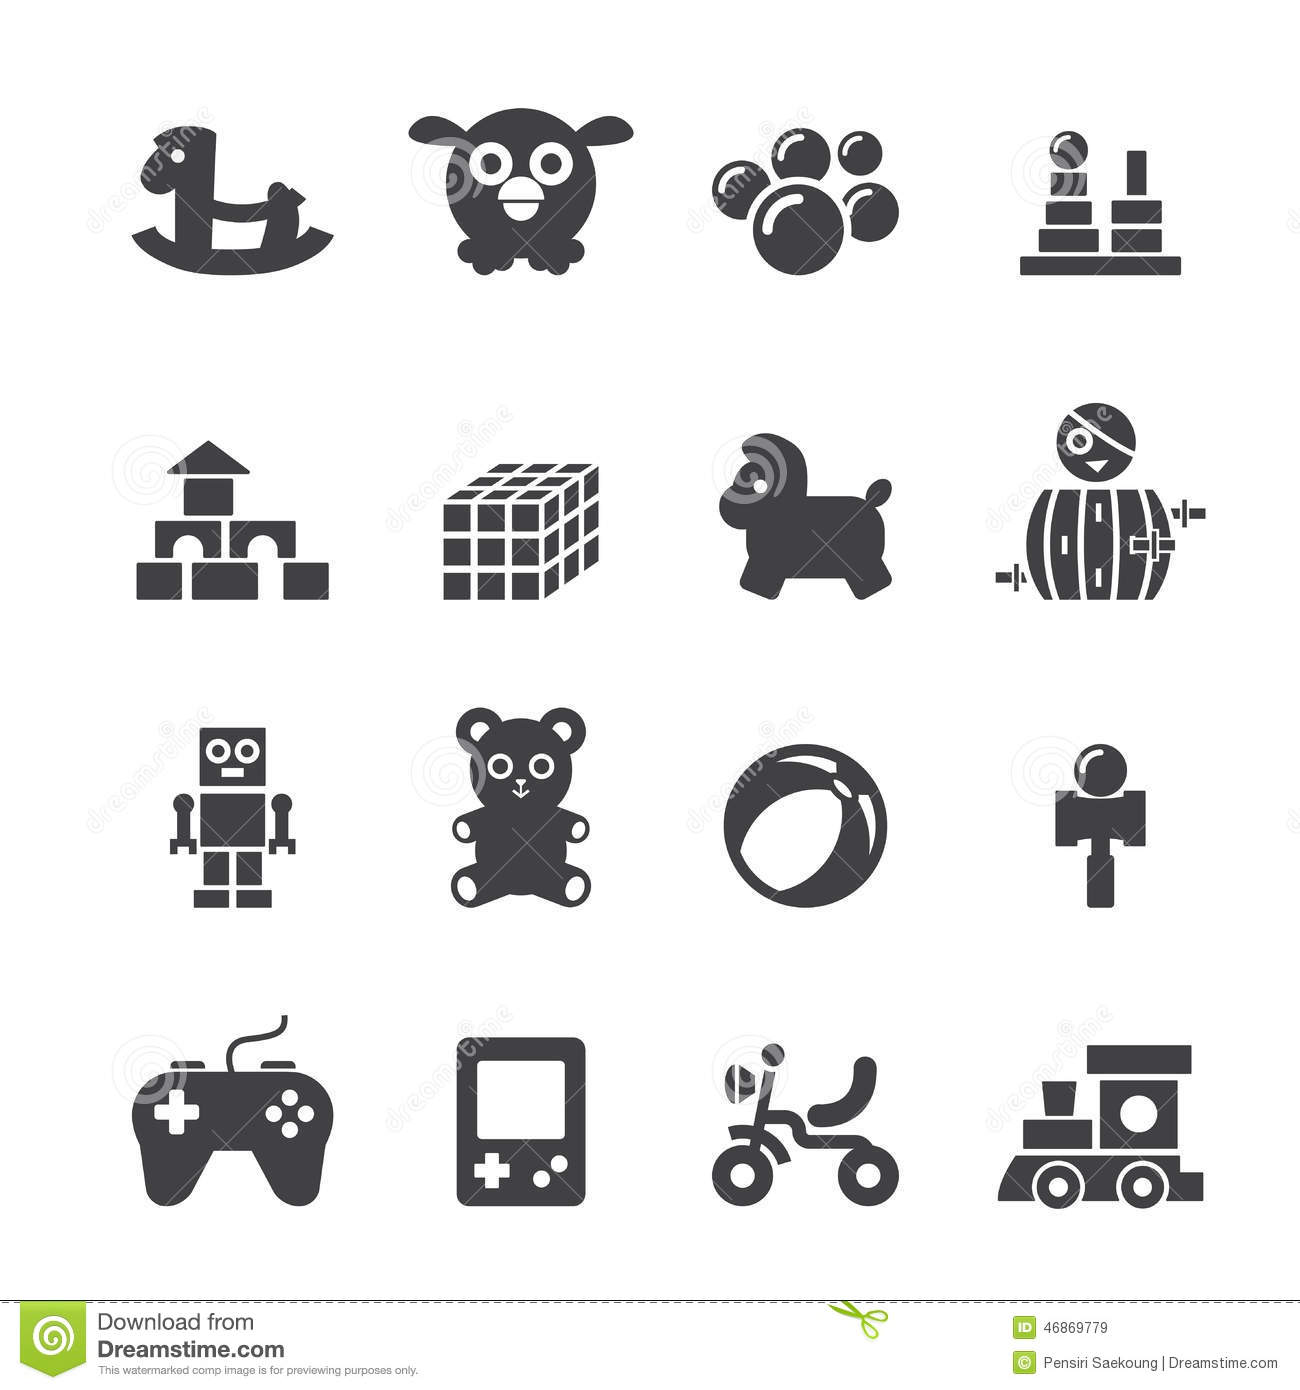 toy icon images - usseek.com